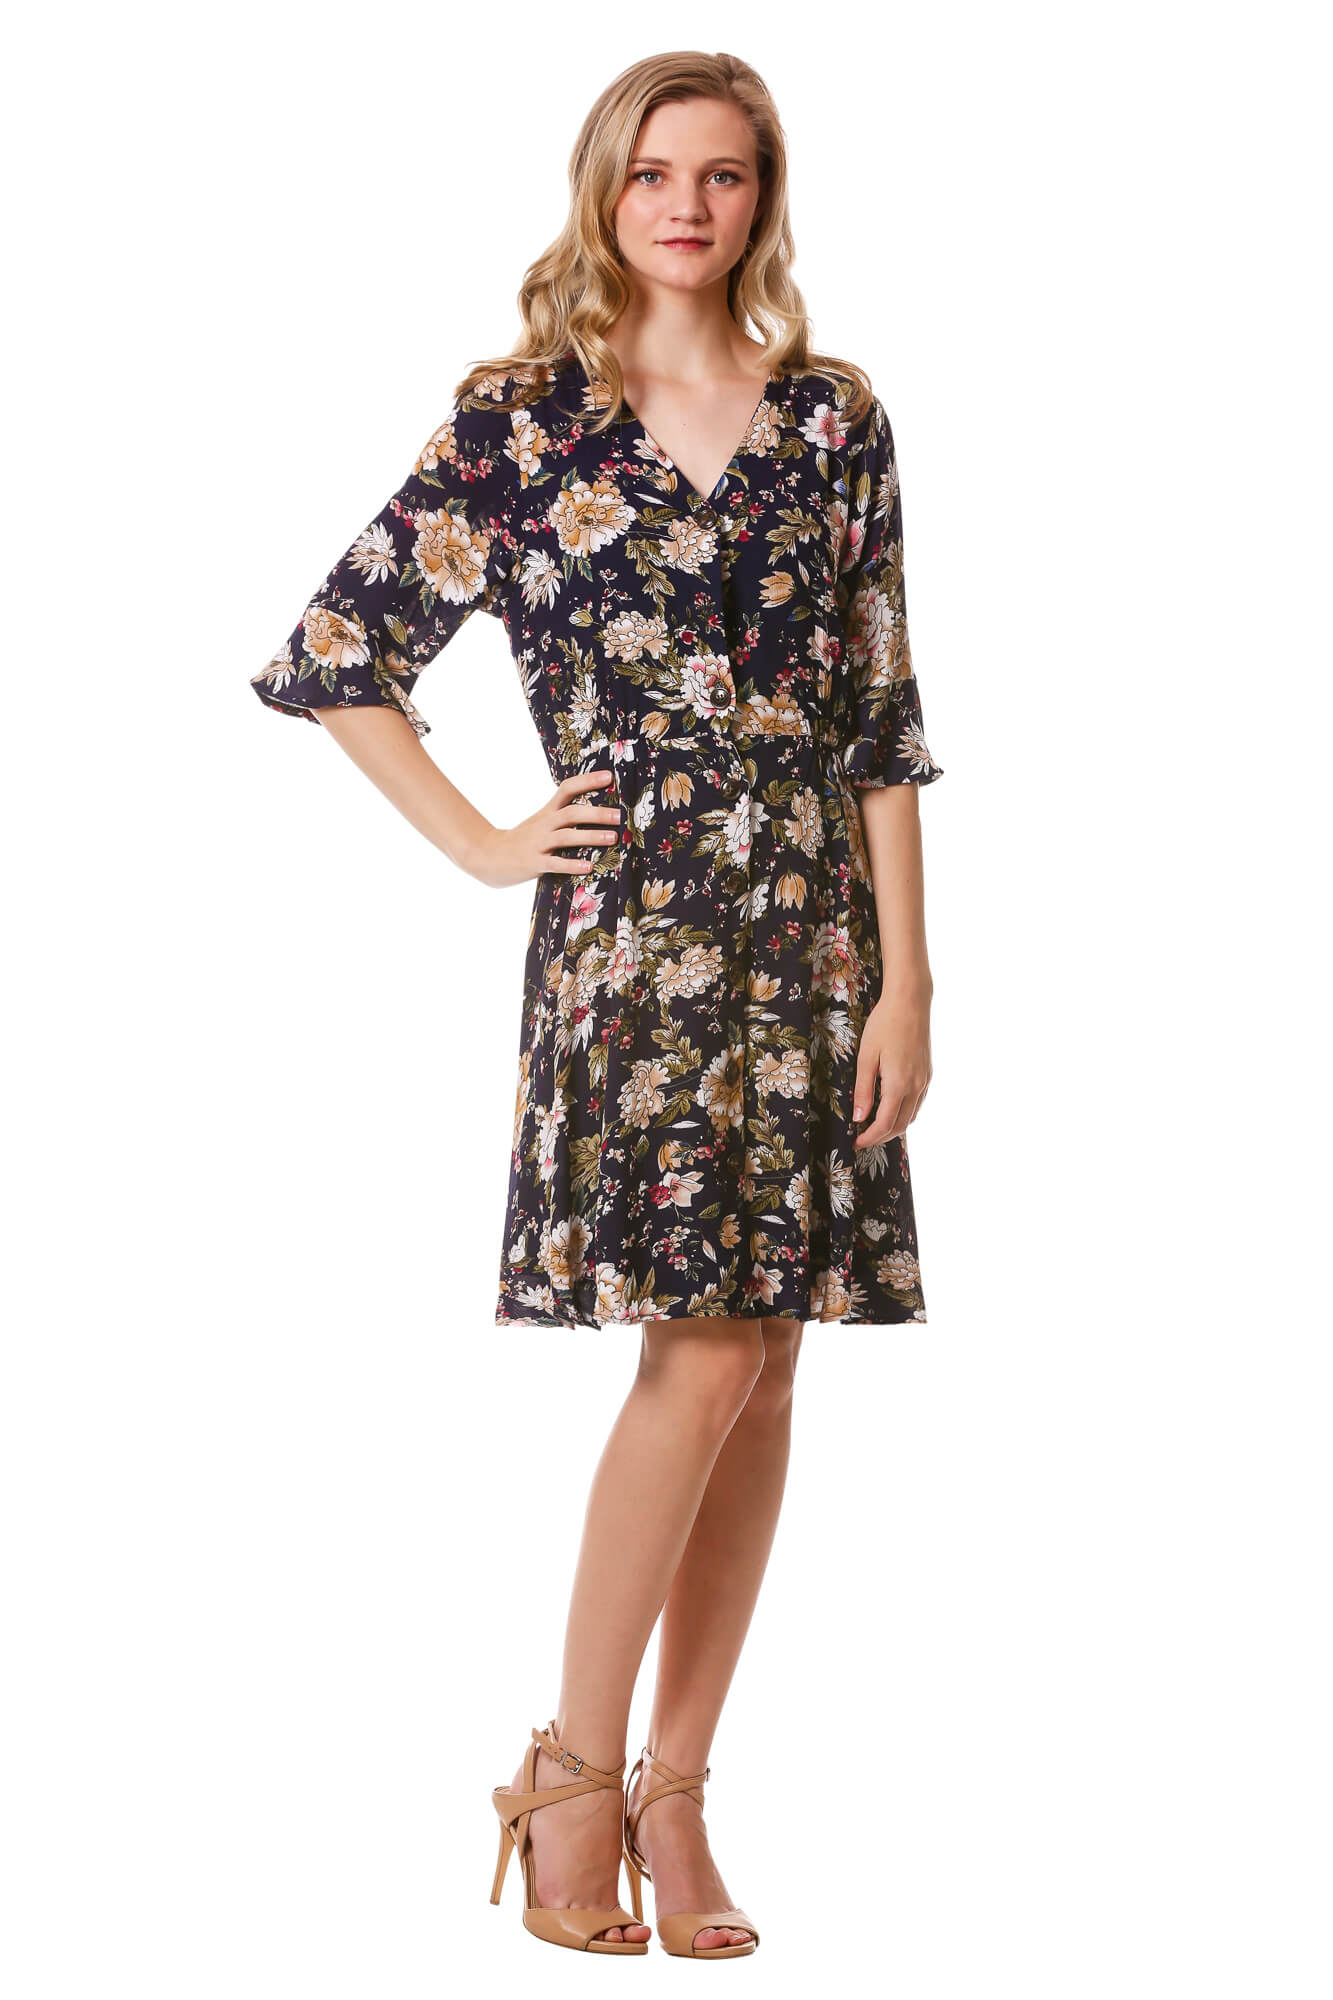 Women's Navy Floral Button Dress with Bell Sleeves | Neesha Fashion